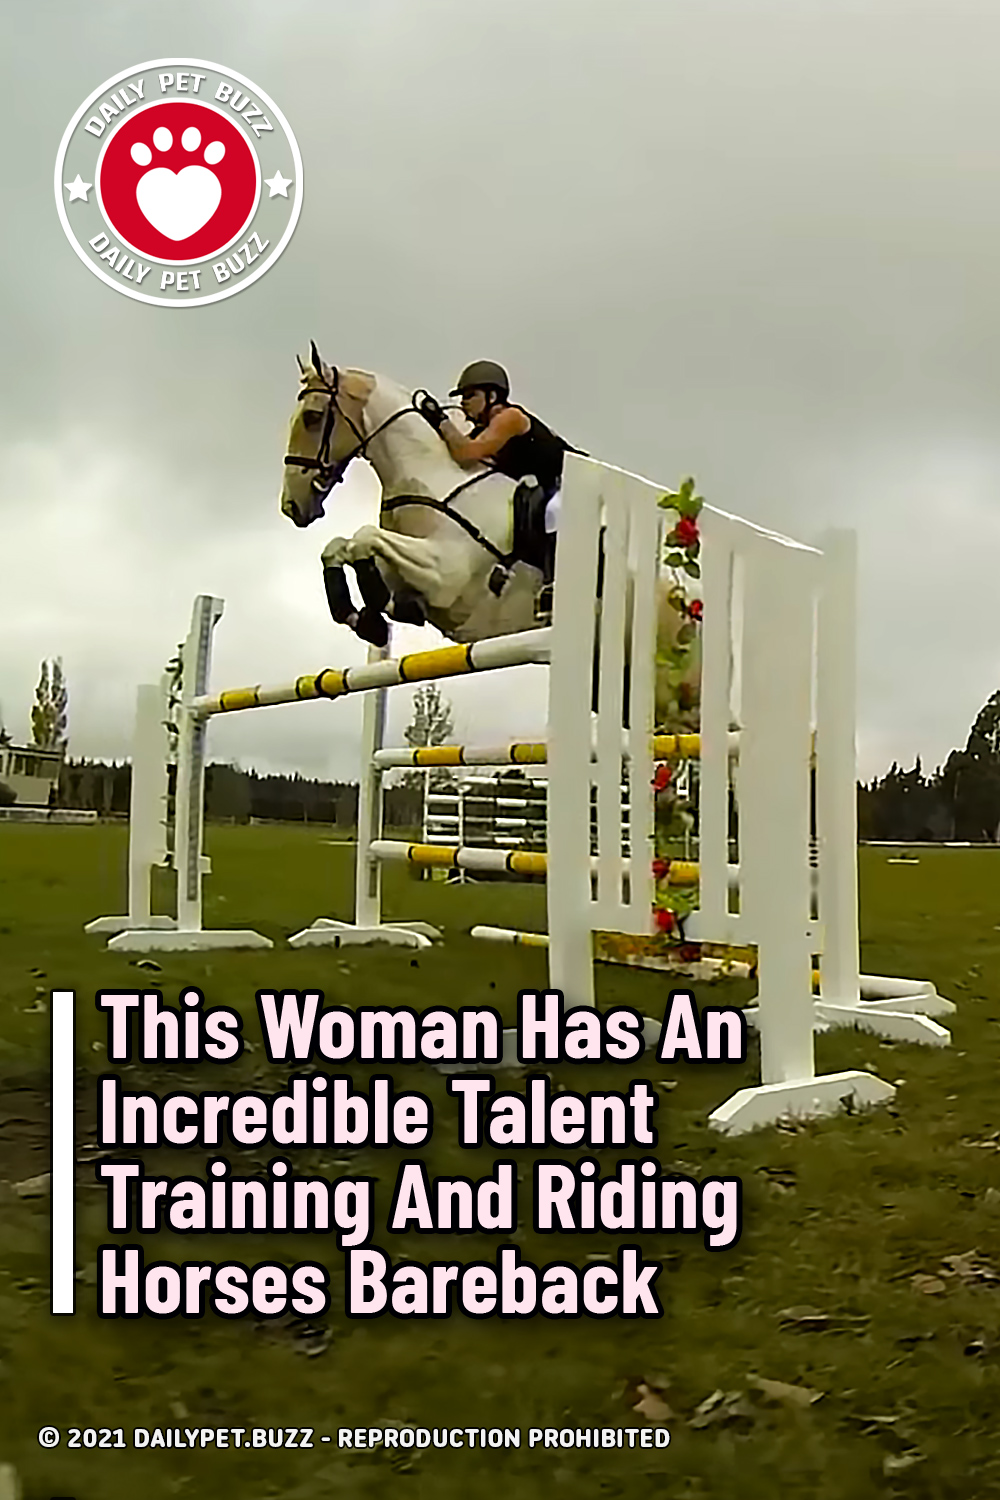 This Woman Has An Incredible Talent Training And Riding Horses Bareback